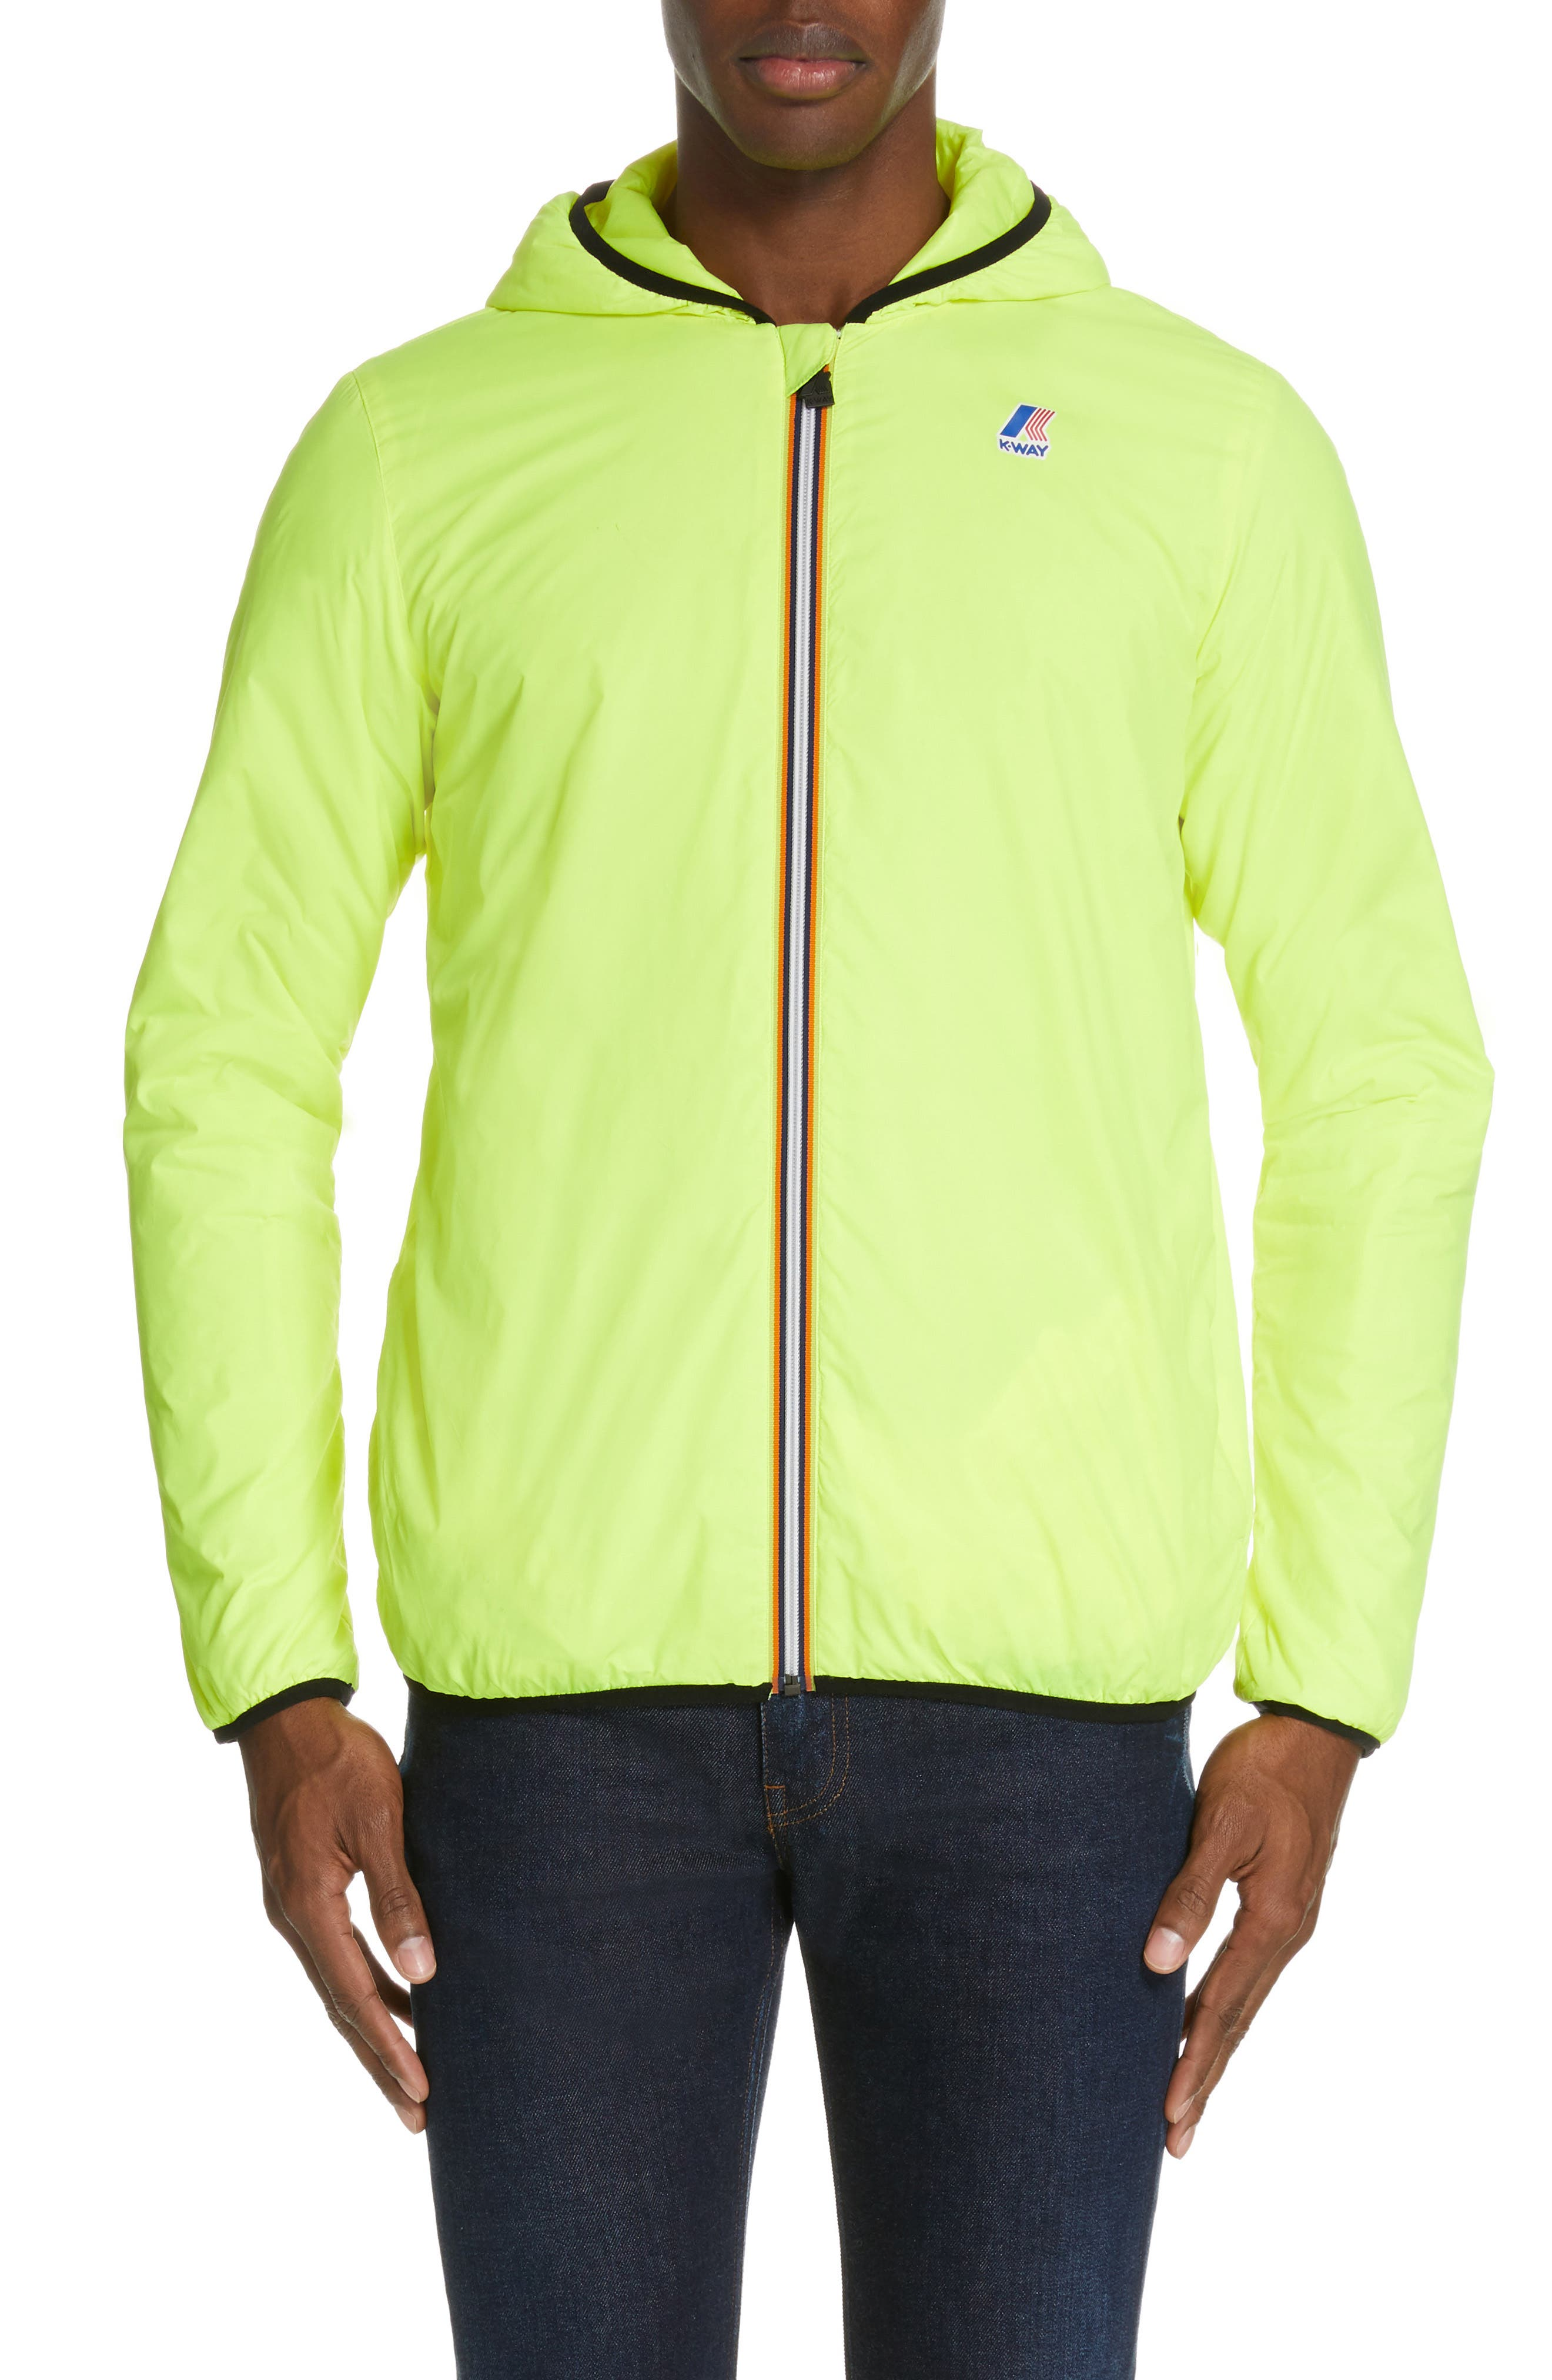 Le Vrai 3.0 Claude Light Warm Water Resistant Hooded Windbreaker,                             Alternate thumbnail 2, color,                             YELLOW FLUO